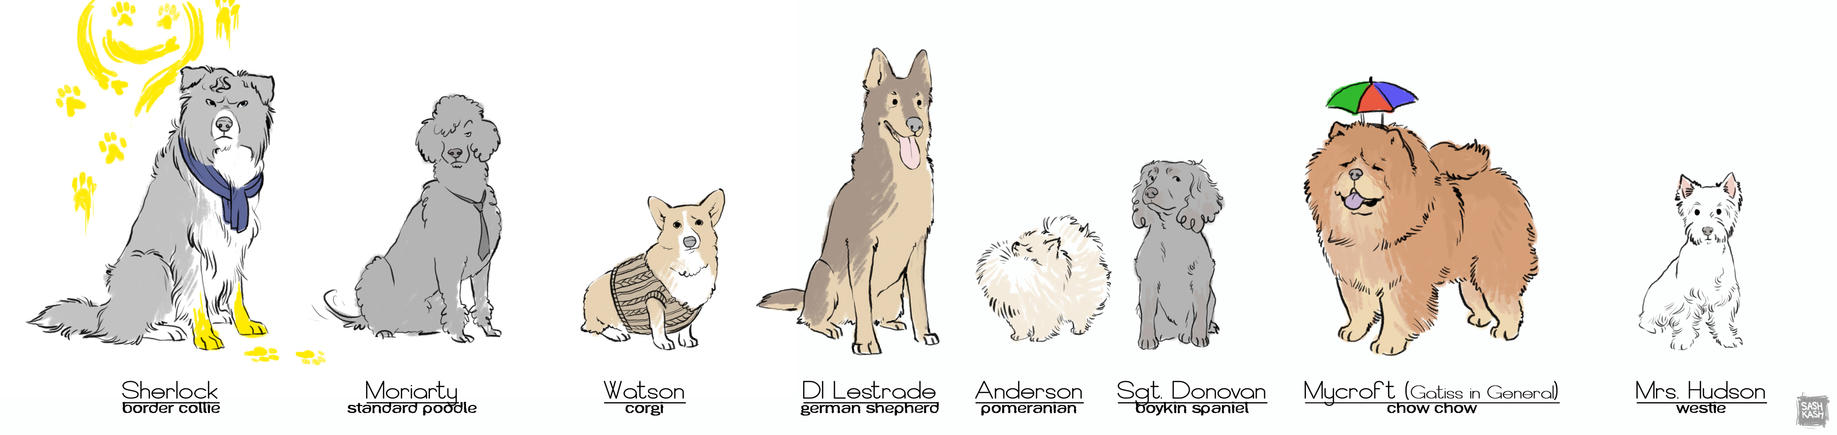 Sherlock Dogs by Sash-kash